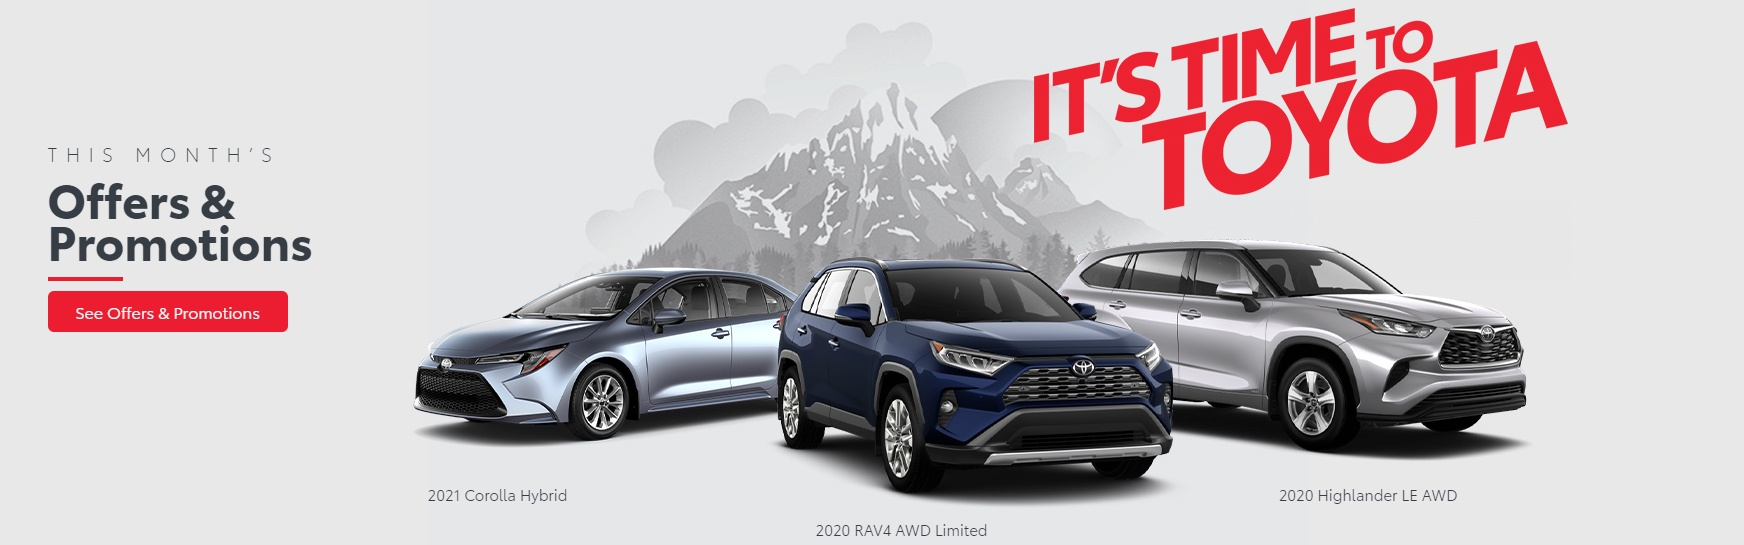 it's time to toyota sale promotion offer at ken shaw toyota in ontario